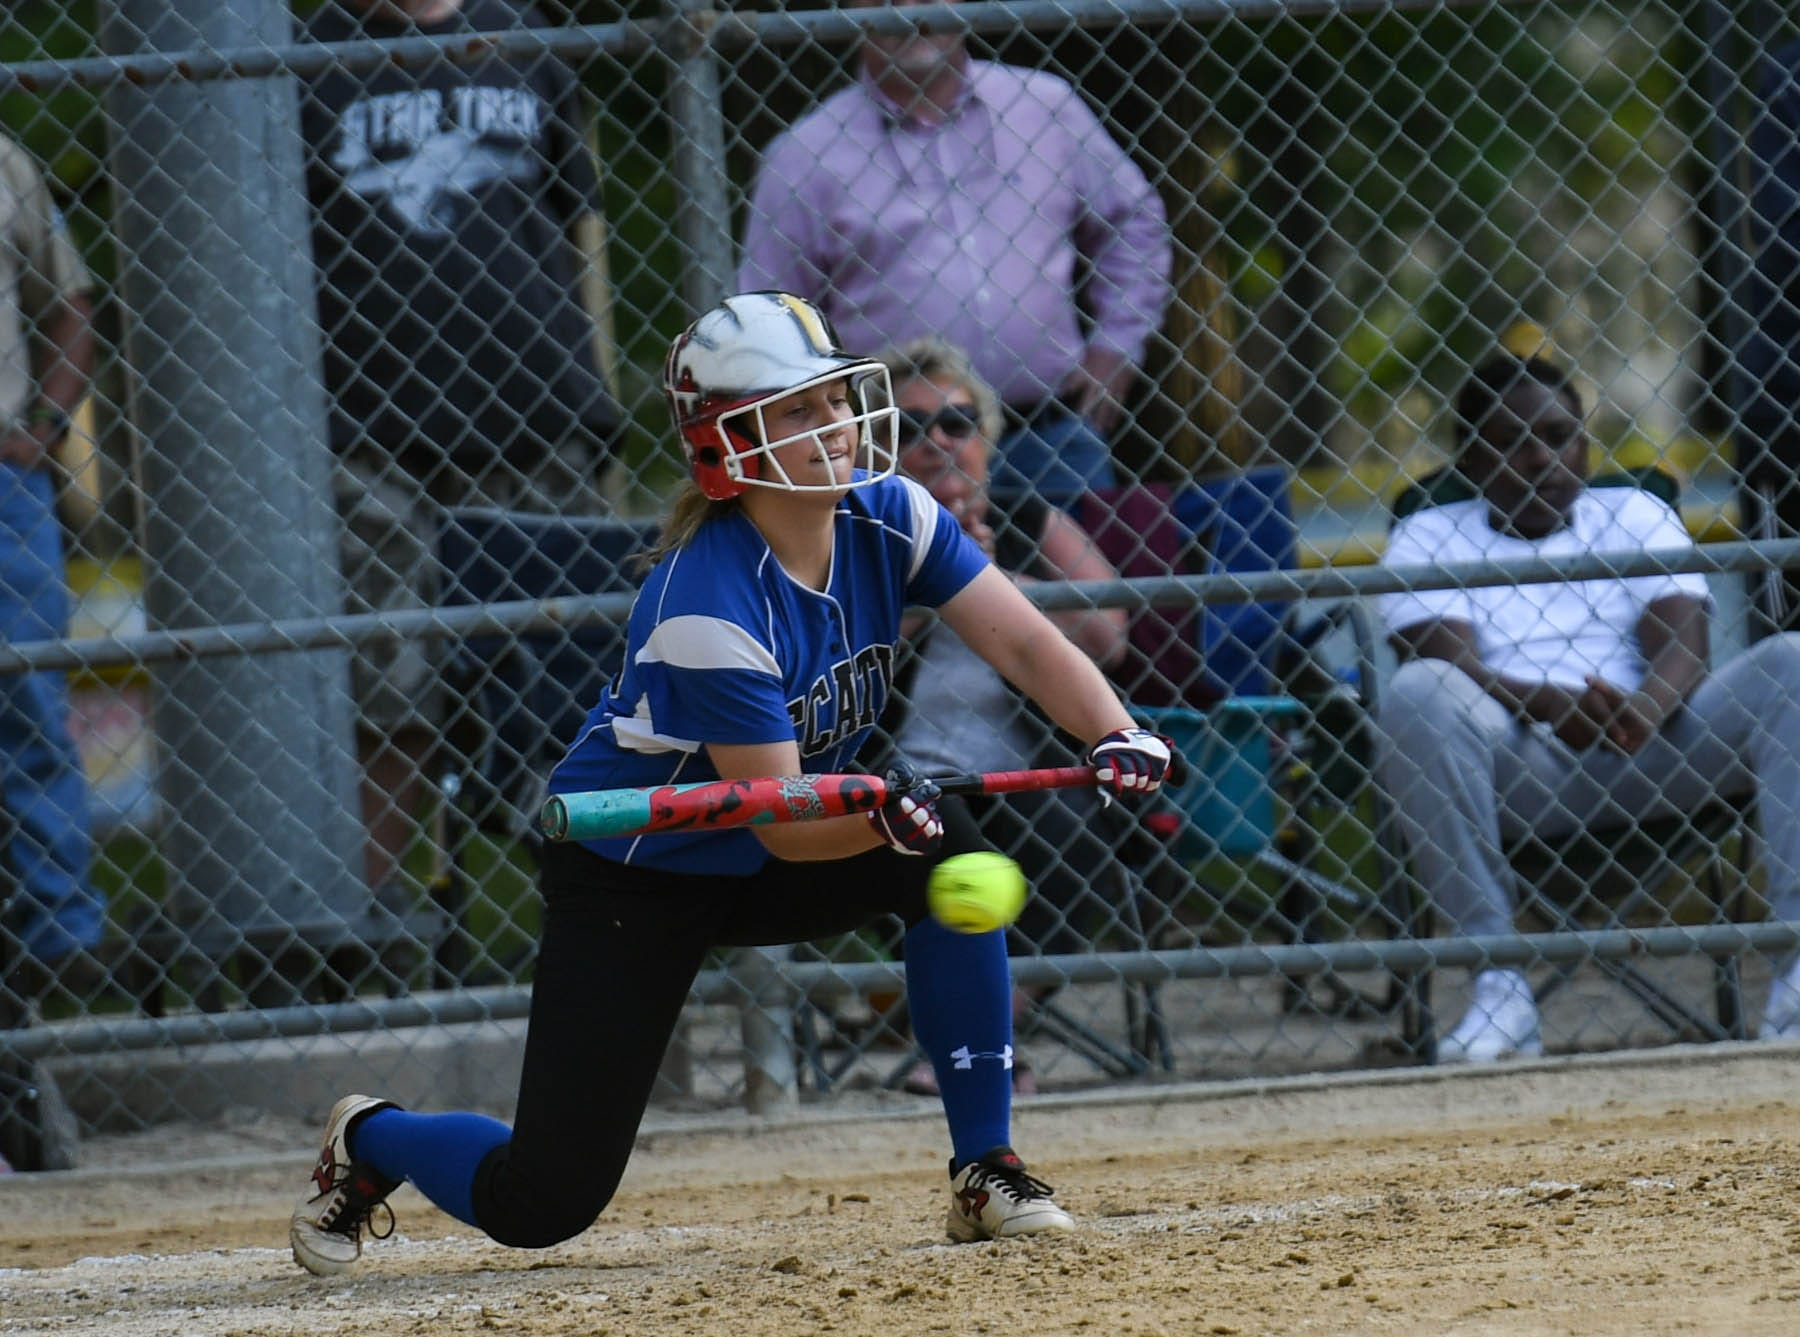 Decatur's Alexa Eisemann (35) bats up against Colonel Richardson in the Bayside Softball Championship game on Wednesday, May 8, 2019. Decatur prevailed with a score of 4 to 1.